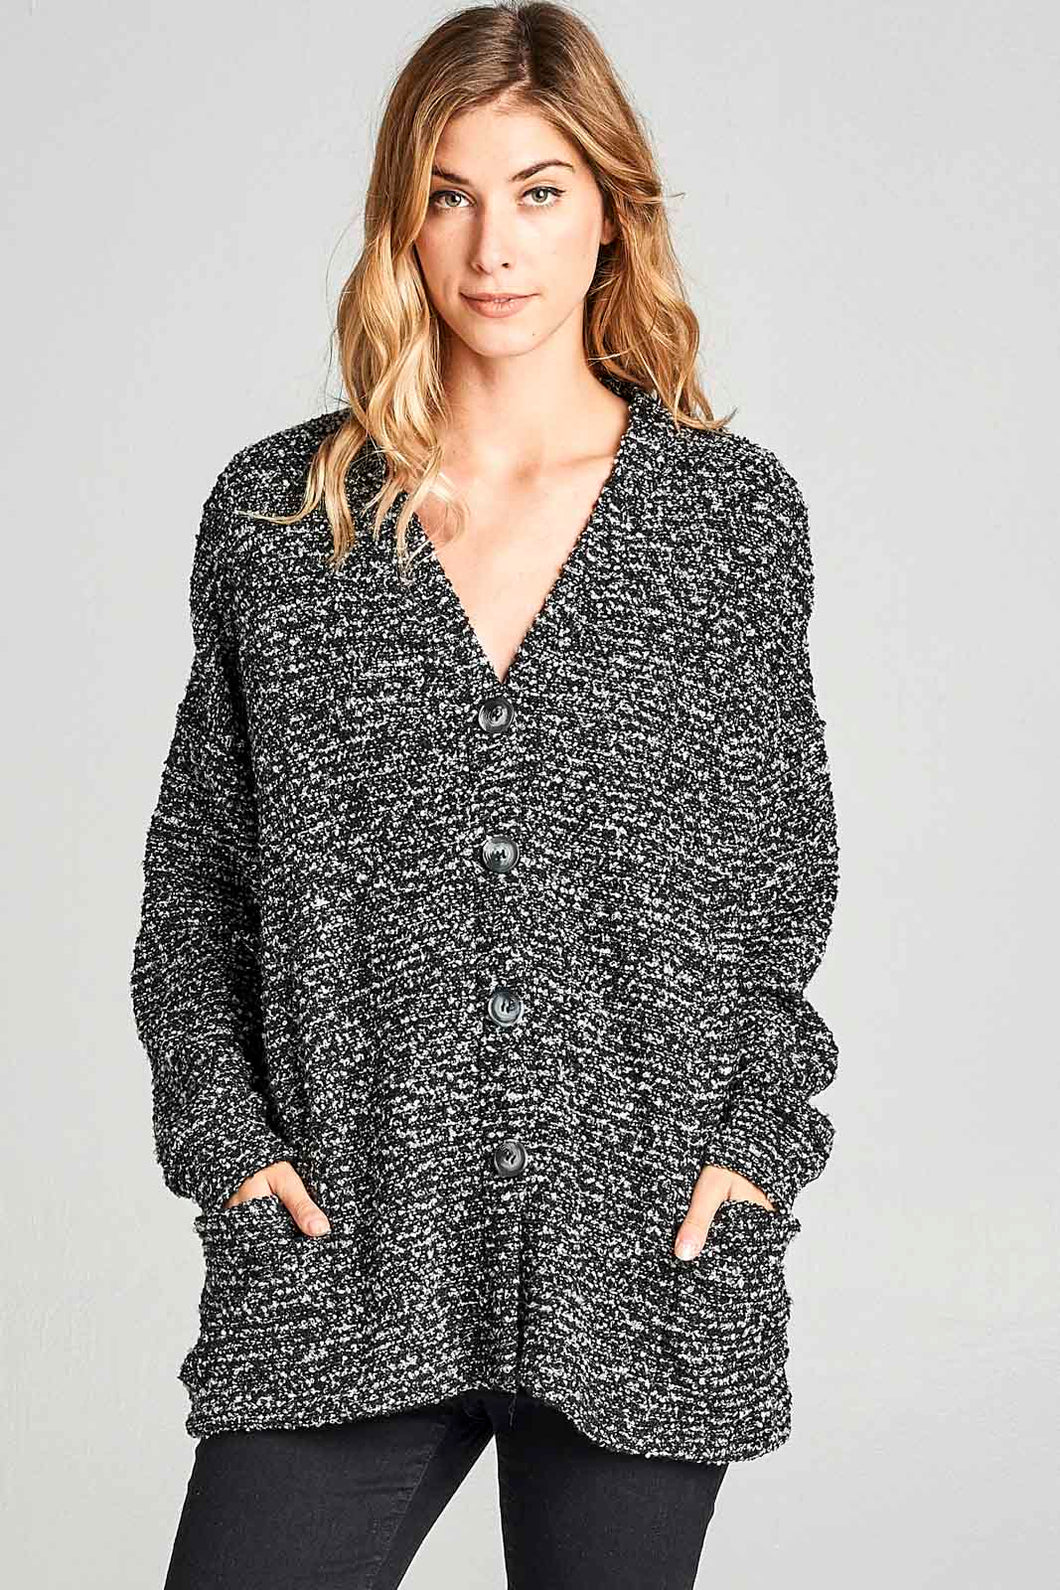 Black/White Marled Cardigan